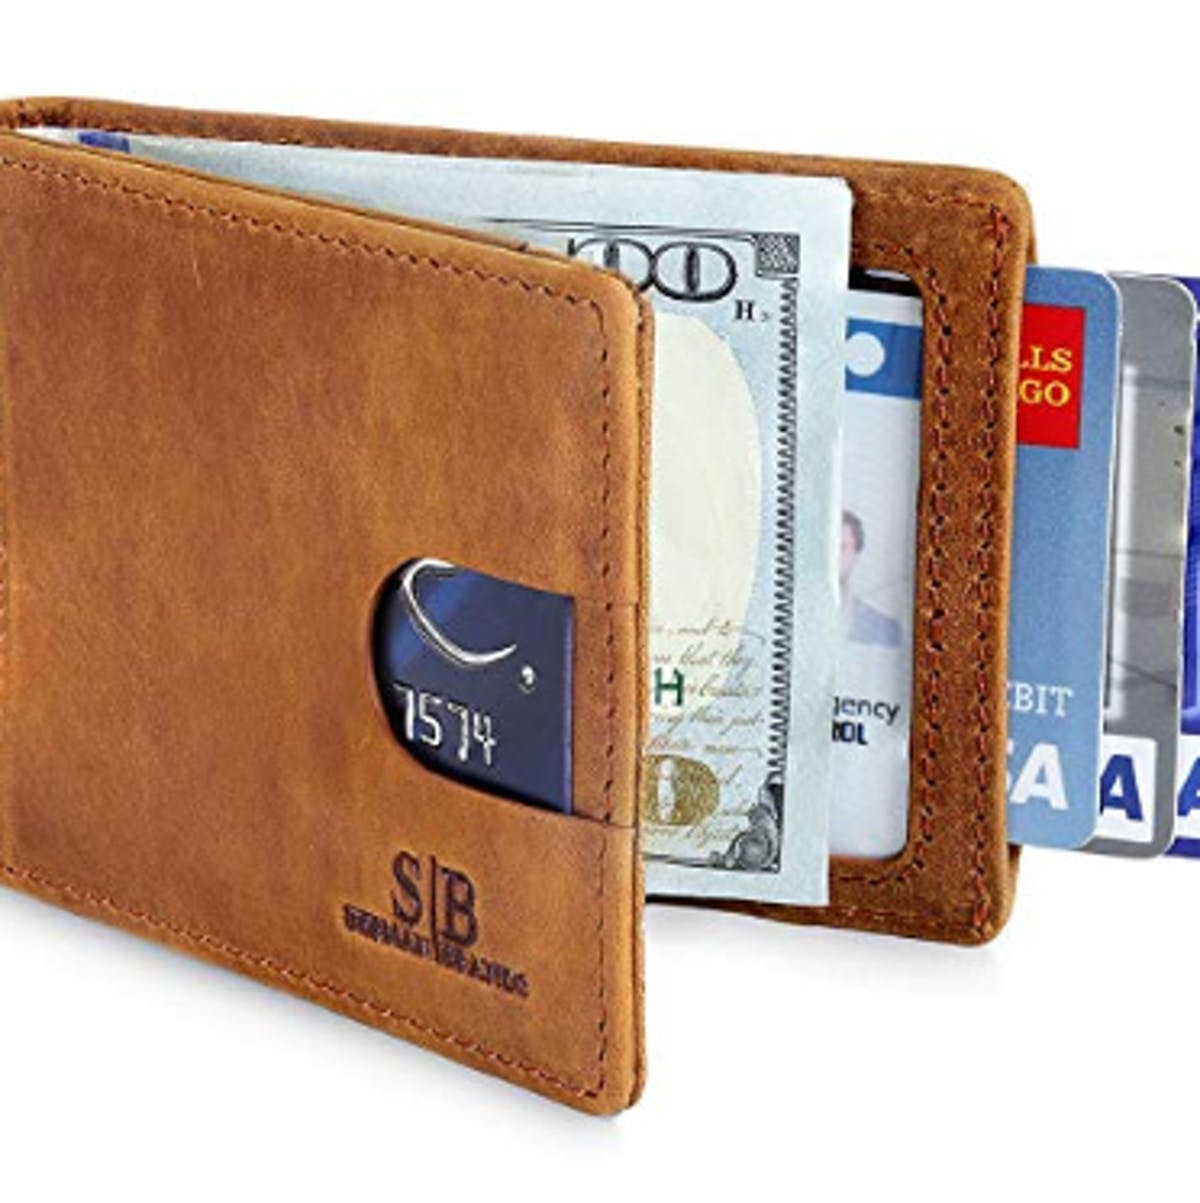 The 7 Top Rated Slim Wallets on Amazon